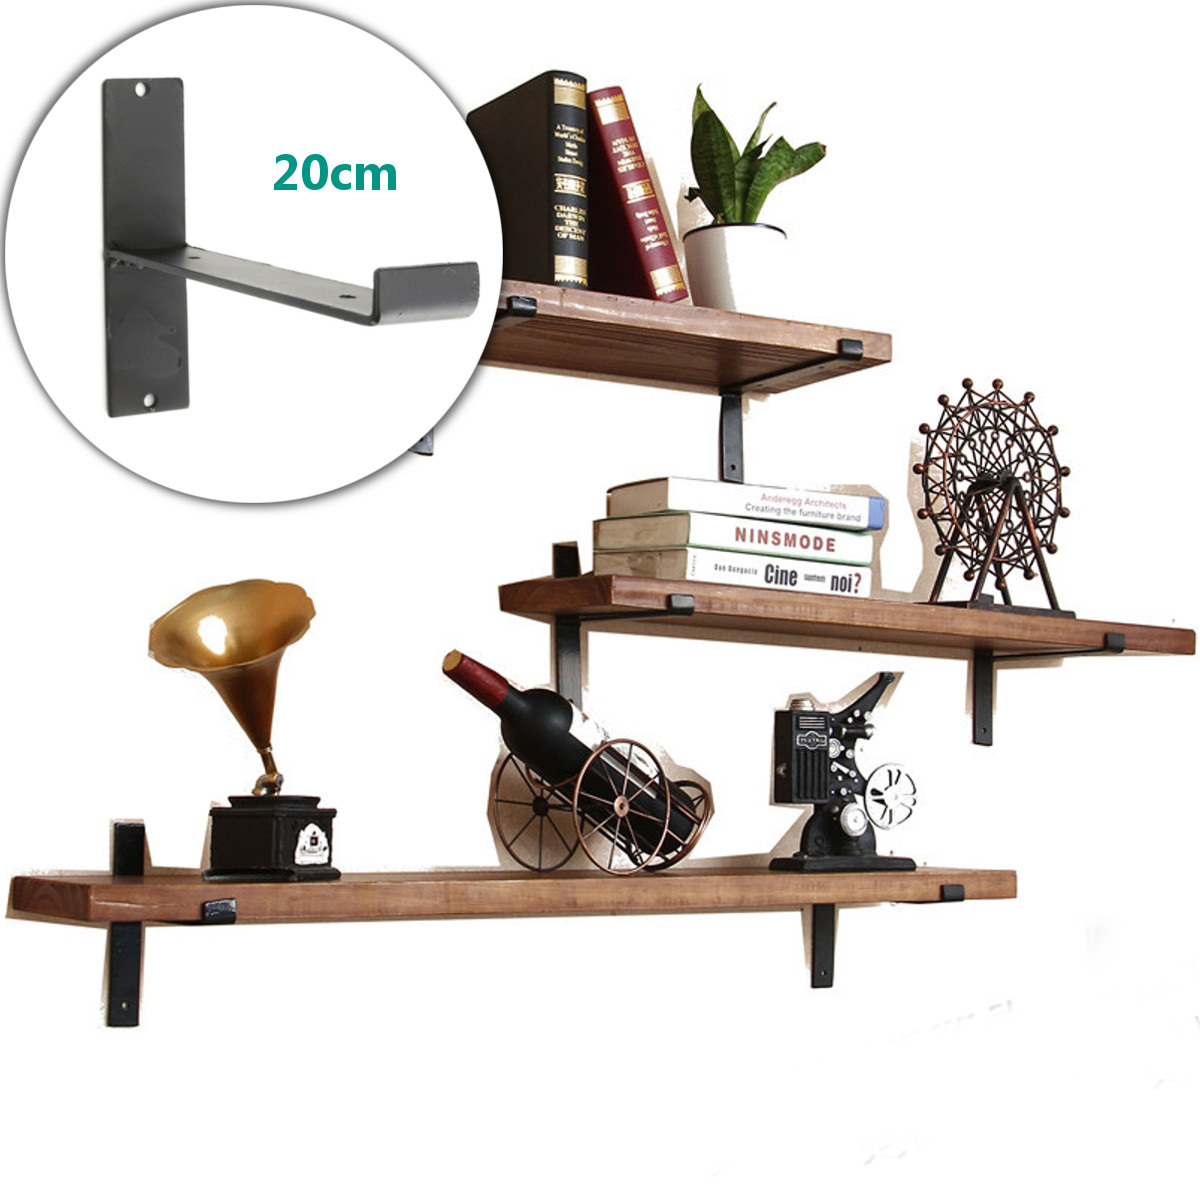 Decorative Metal Wall Shelves online get cheap decorative metal wall shelf -aliexpress